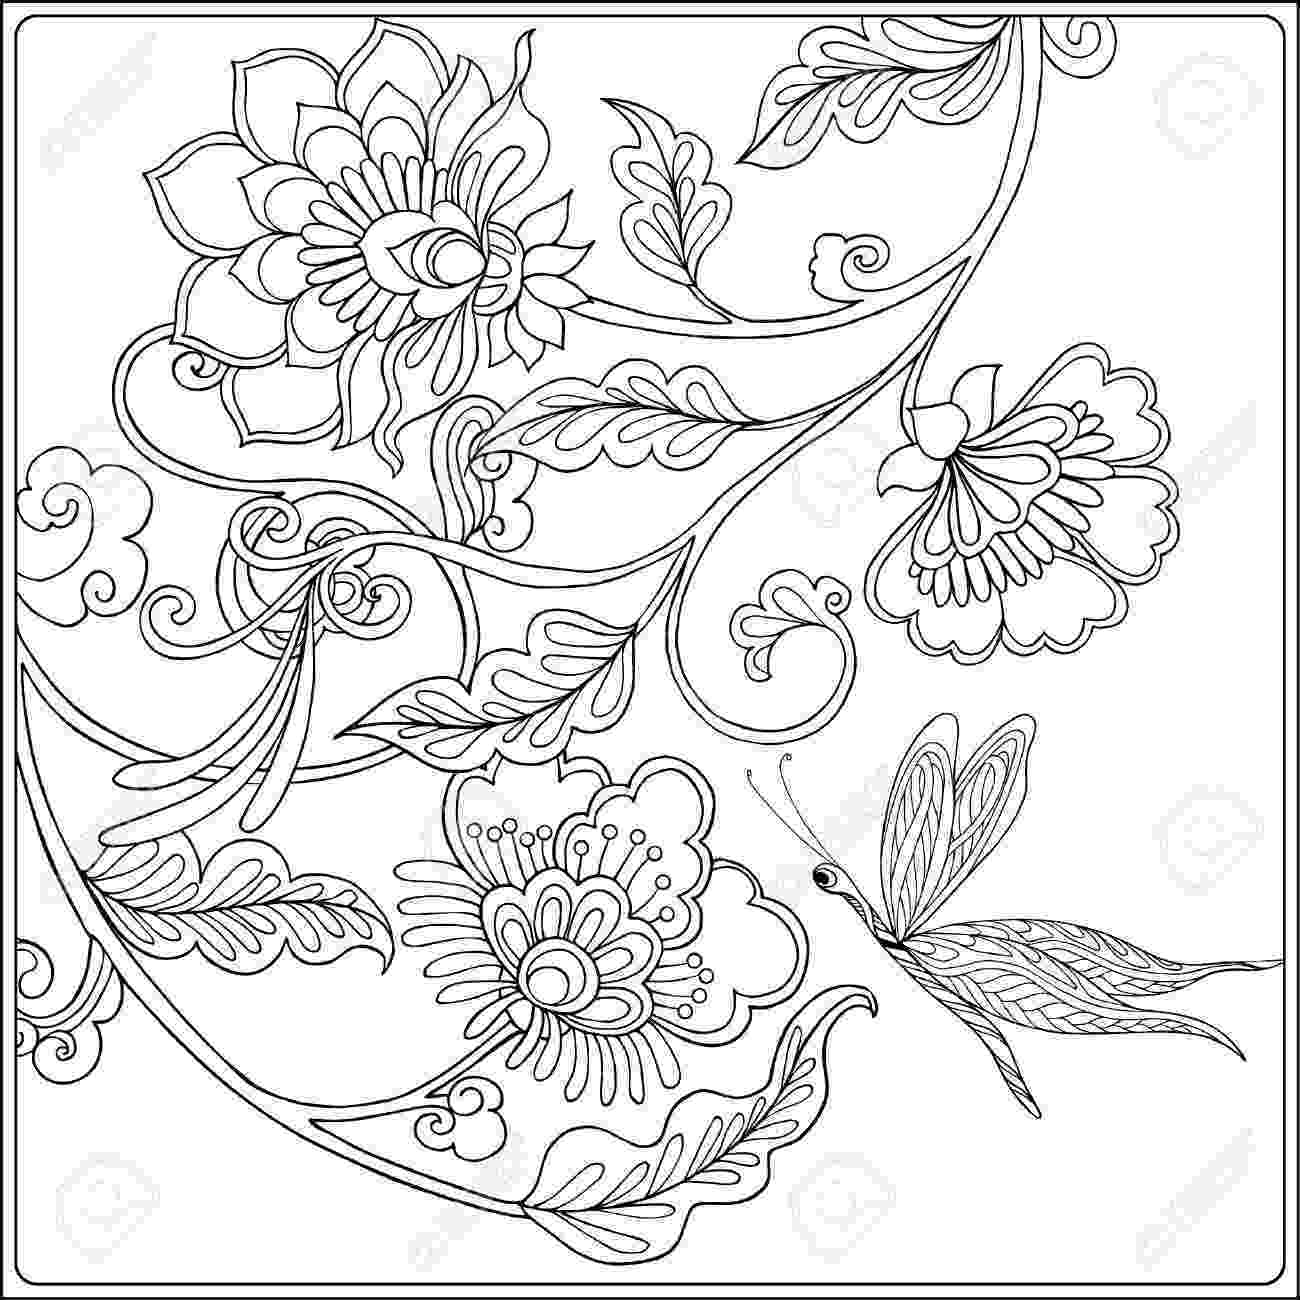 coloring pages of birds and flowers adult coloring page 2 birds and butterfly floral design pages and coloring birds flowers of